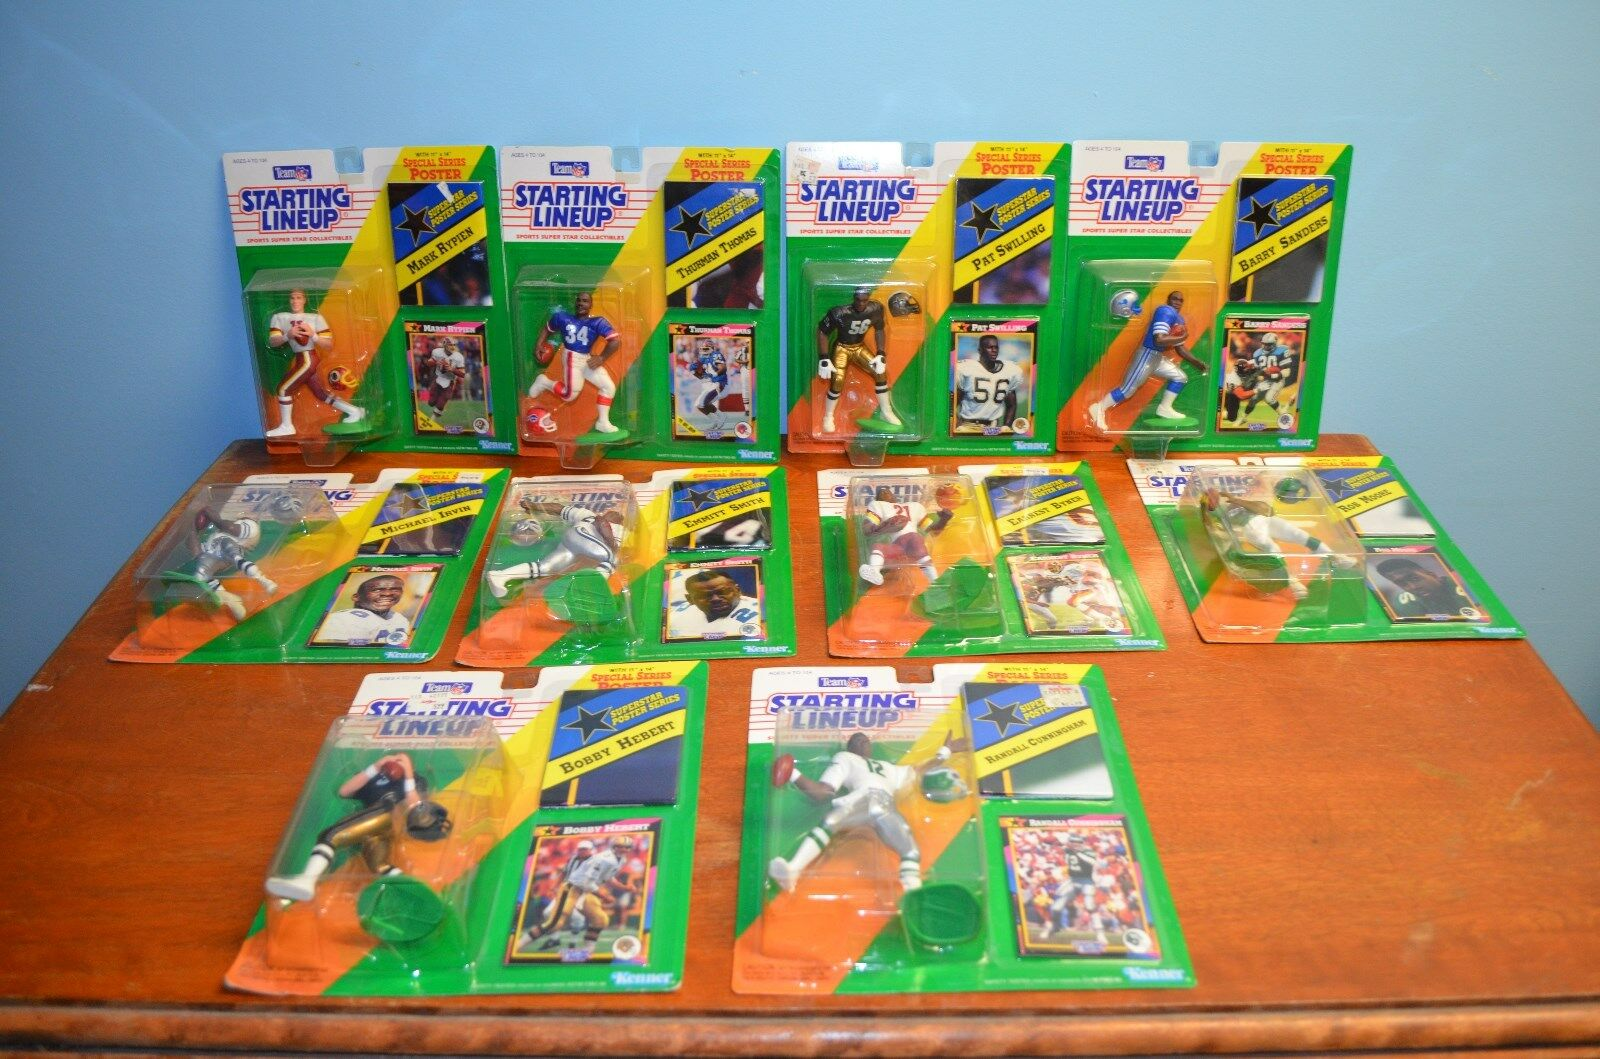 1992 Kenner Football Football Football 10 pieces with card and superstar poster series 81150f